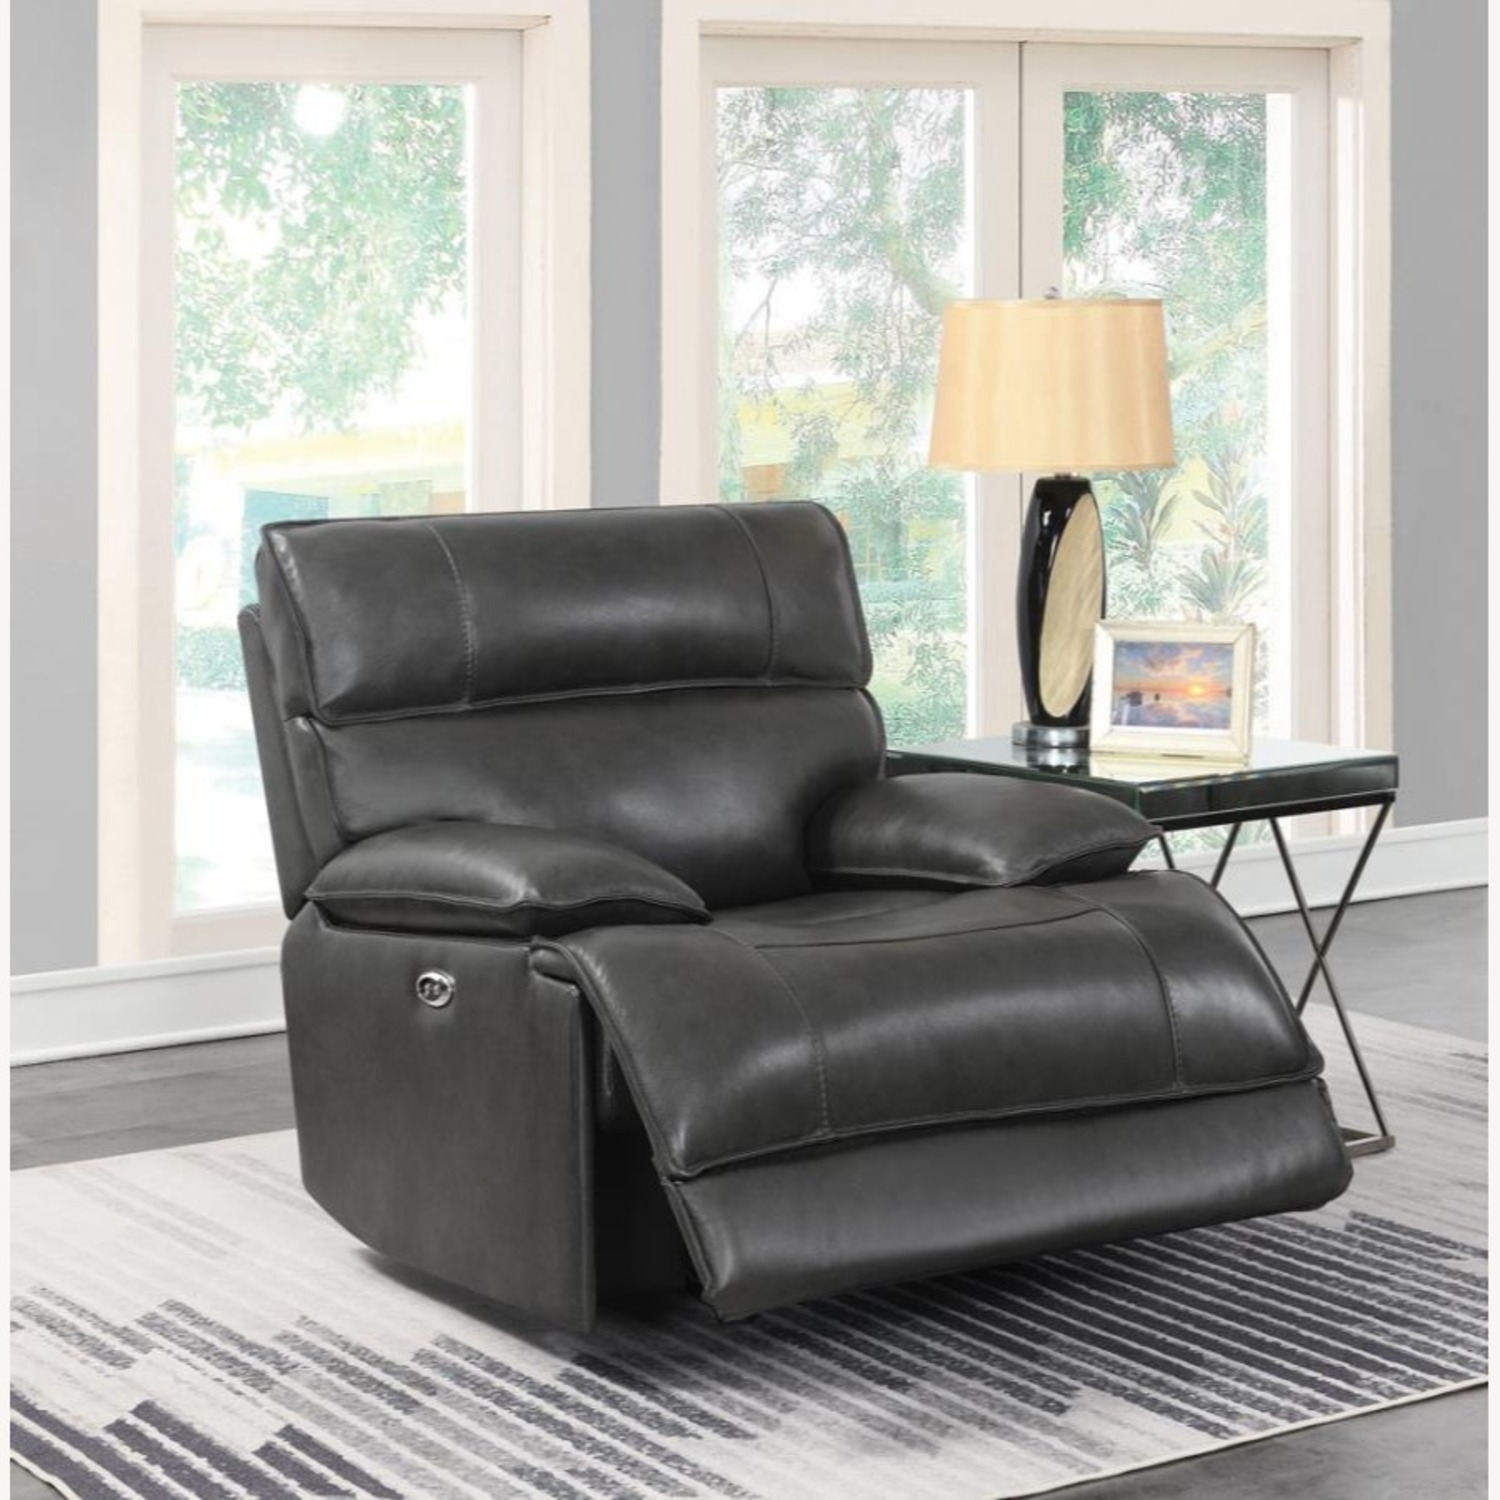 Power Glider Recliner In Charcoal Leather - image-7